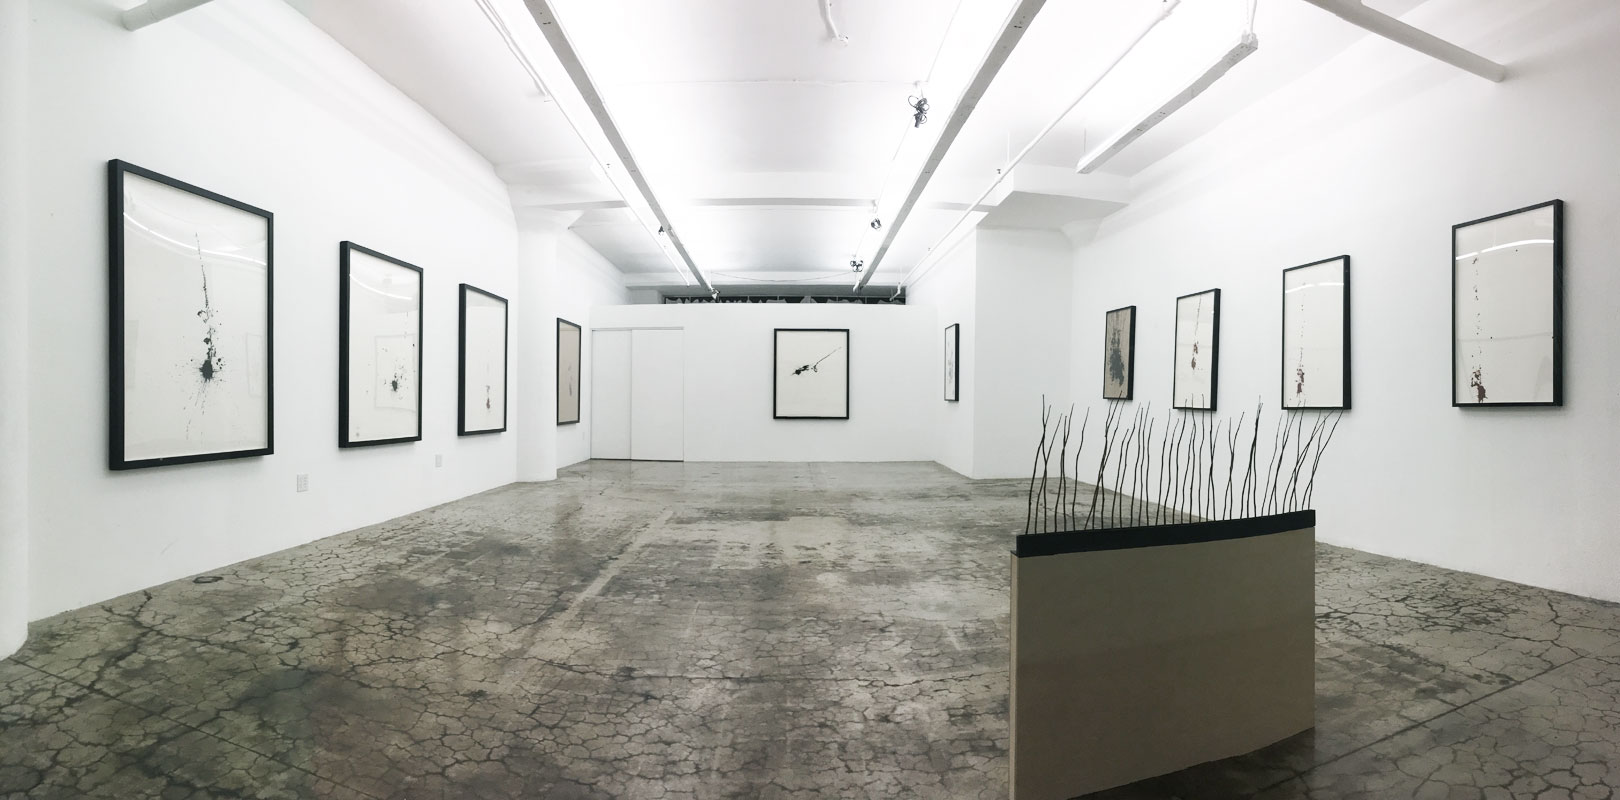 Gerald Giamportone Installation at PØST, 2016. Courtesy of HK Zamani.